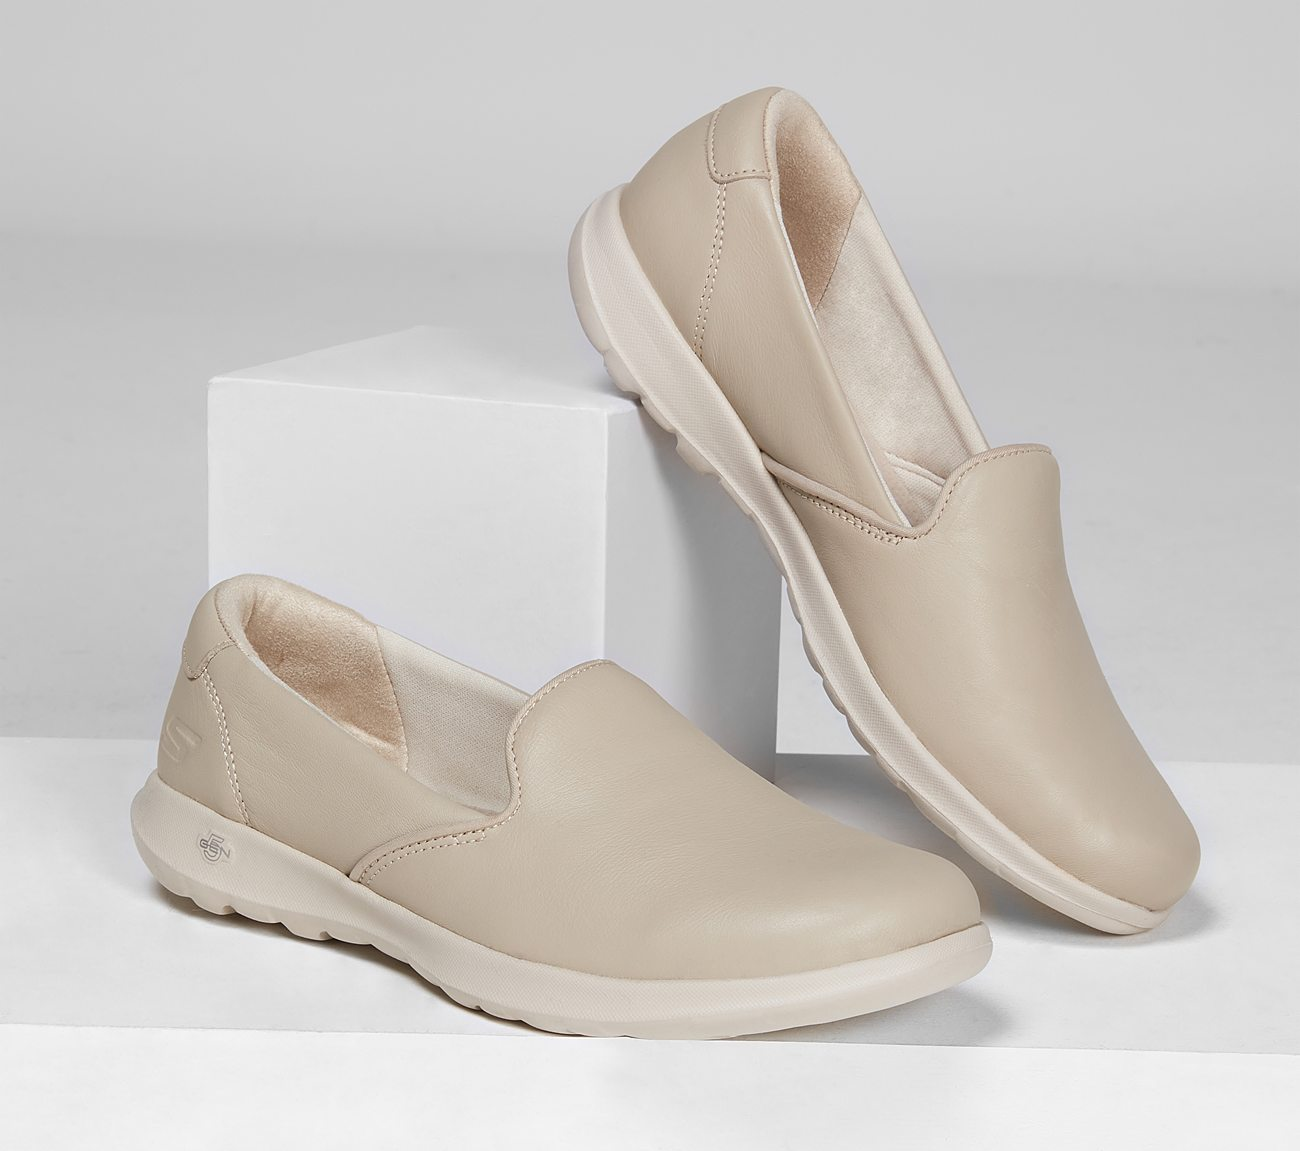 skechers go walk leather shoes